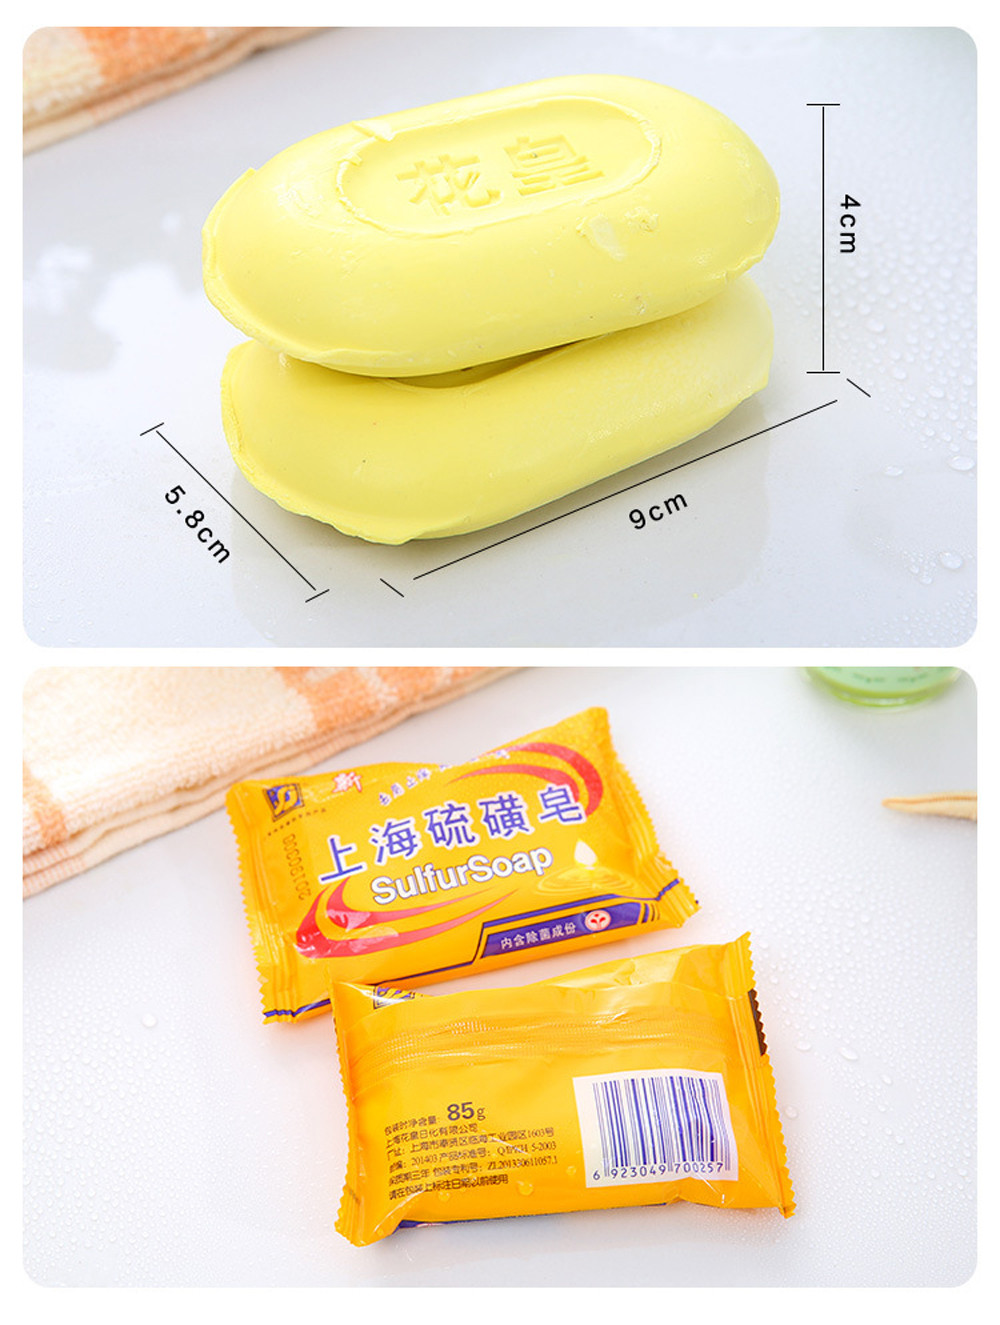 Sulfur Soap Eczema Stop Itching Acne Inexpensive Cure Anti Fungus Dermatitis(China)